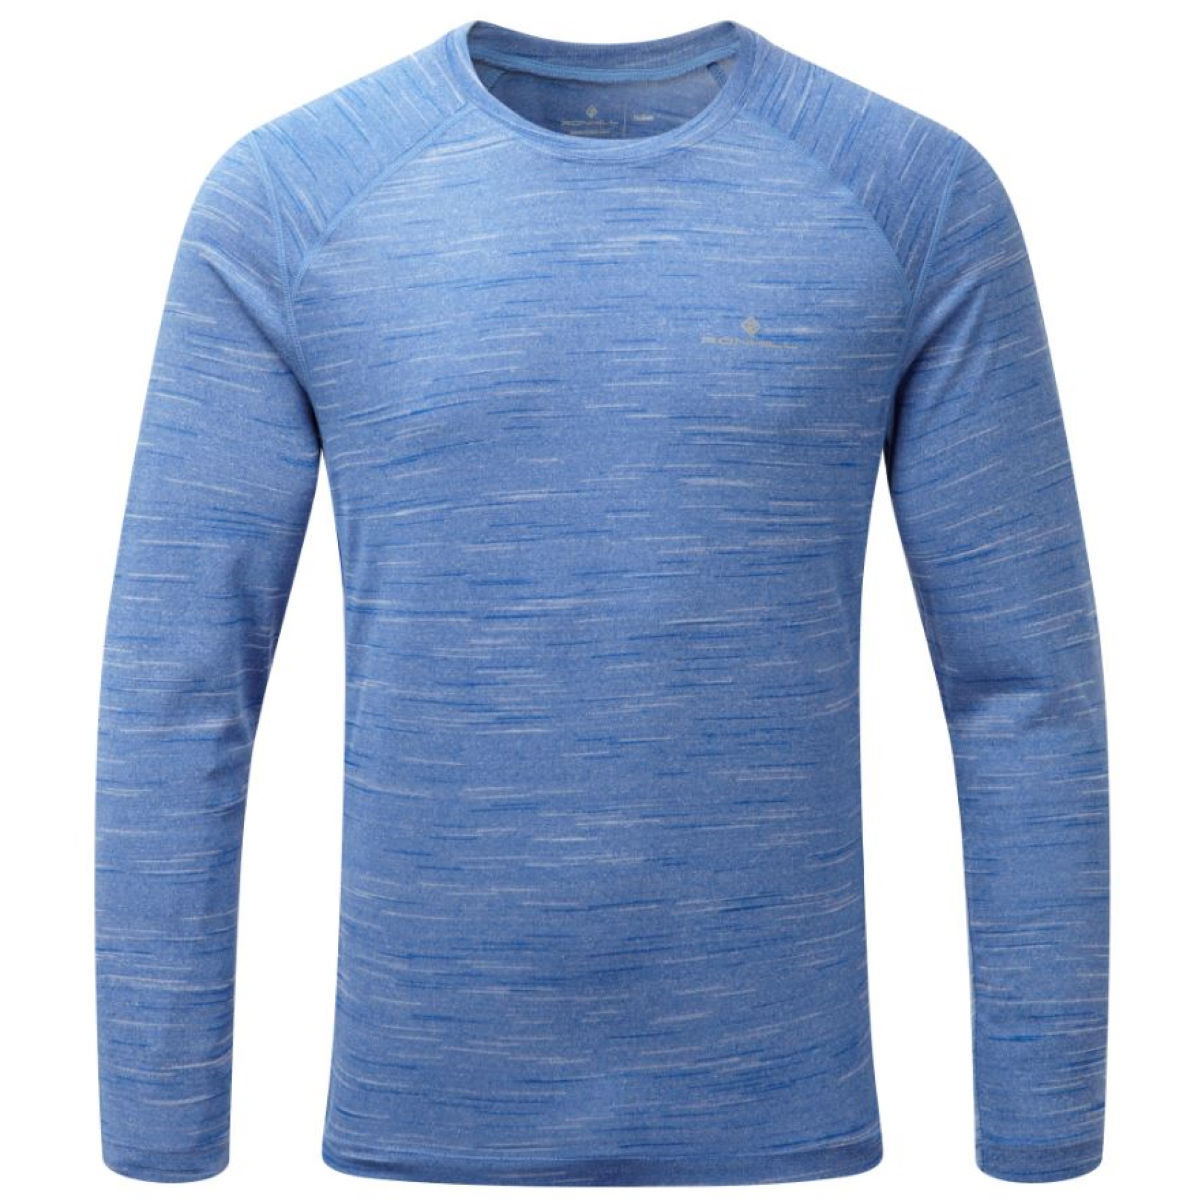 Maillot Ronhill Momentum (manches longues) - L Cobalt Marl